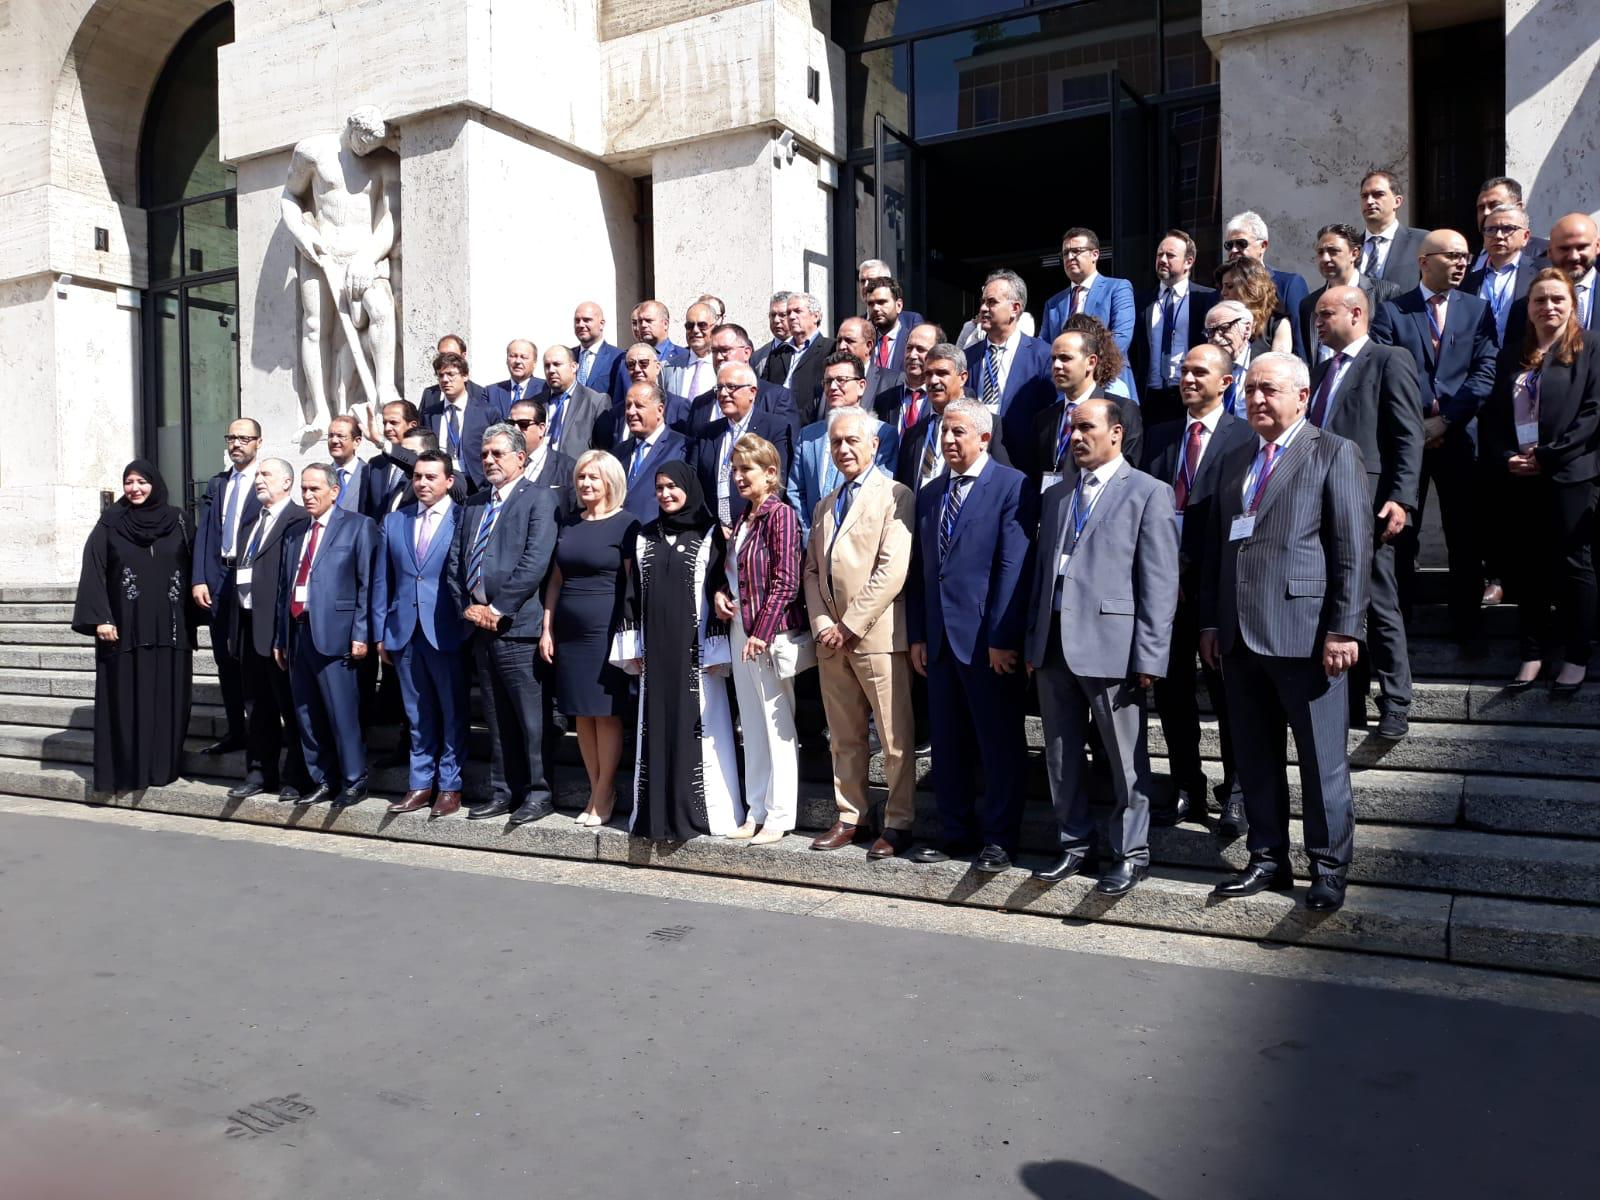 Key economic challenges facing the economic ecosystem in the Mediterranean addressed during PAM regional meeting in Milan